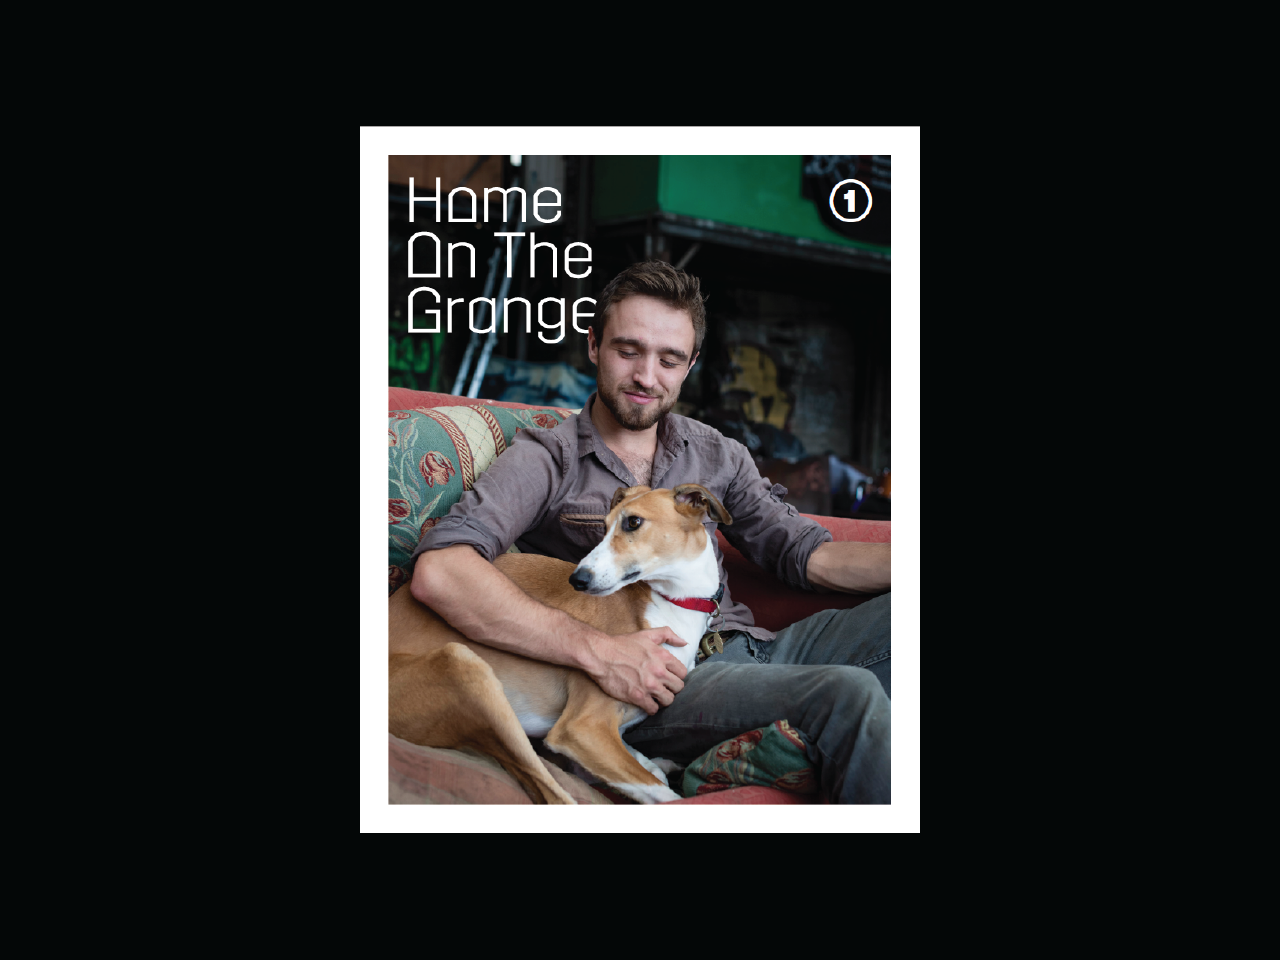 Cover image: Home on the Grange